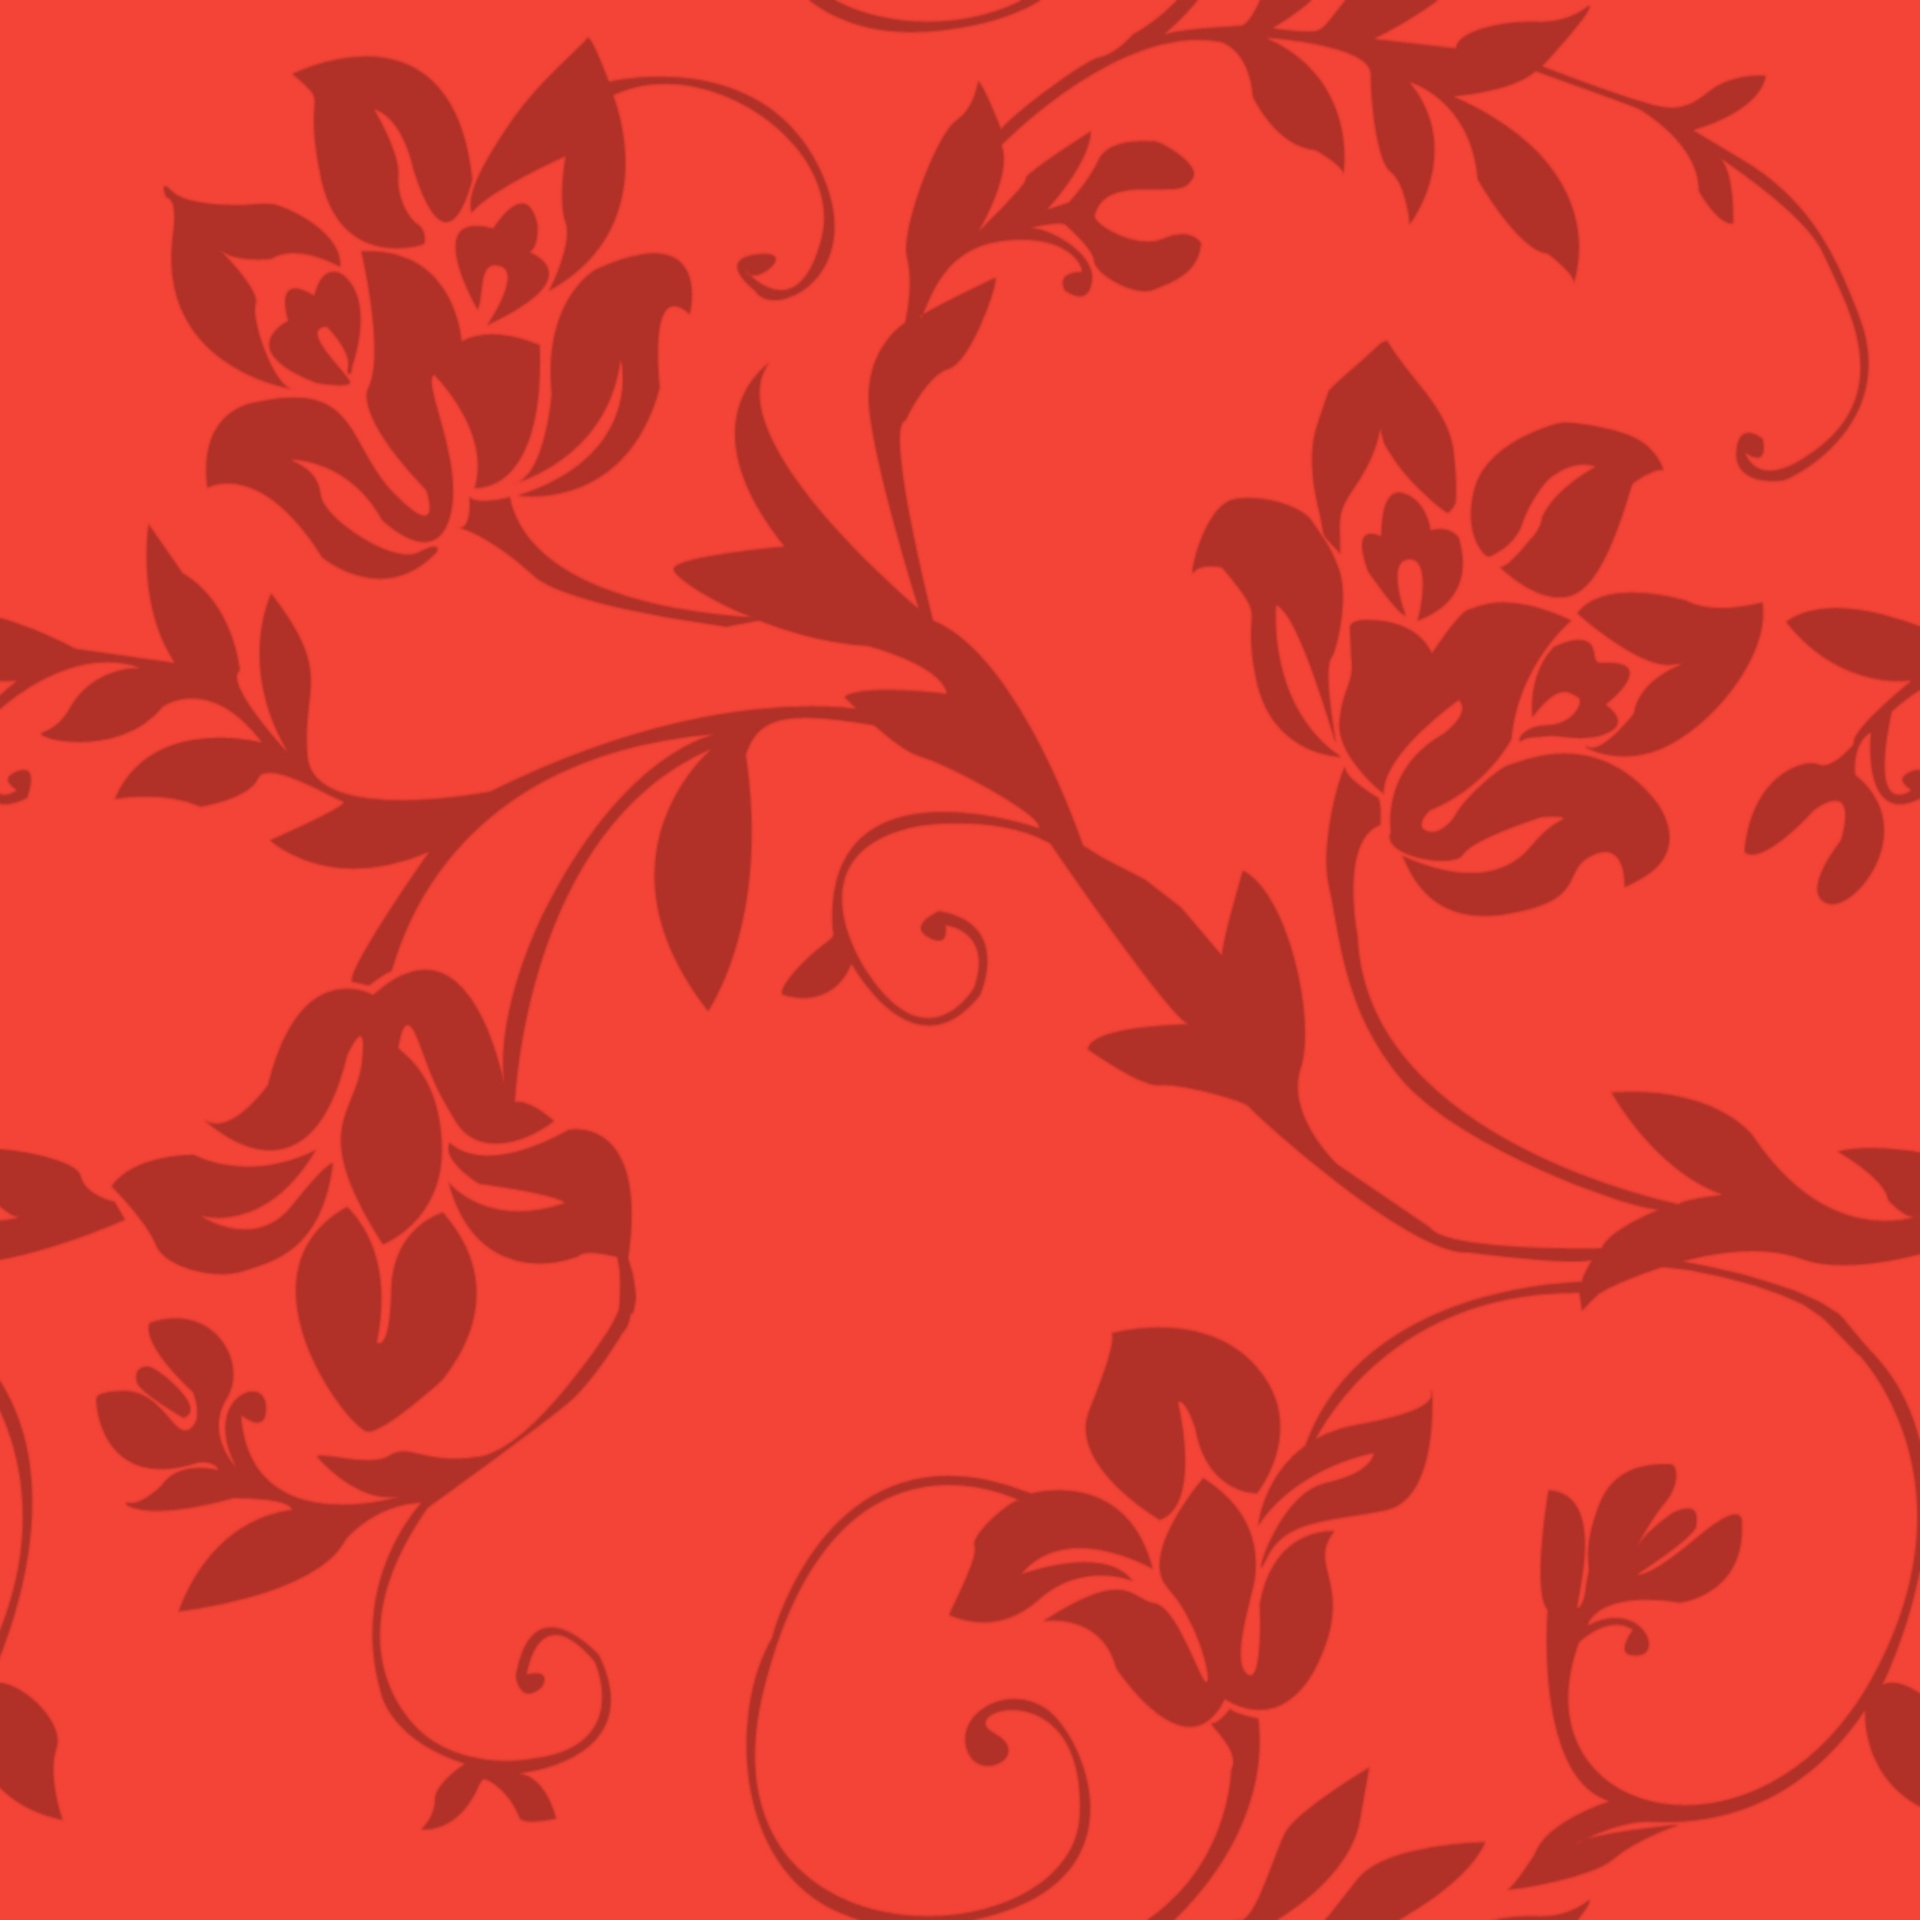 Pattern Floral Drawing Wallpaper Background Free Image From